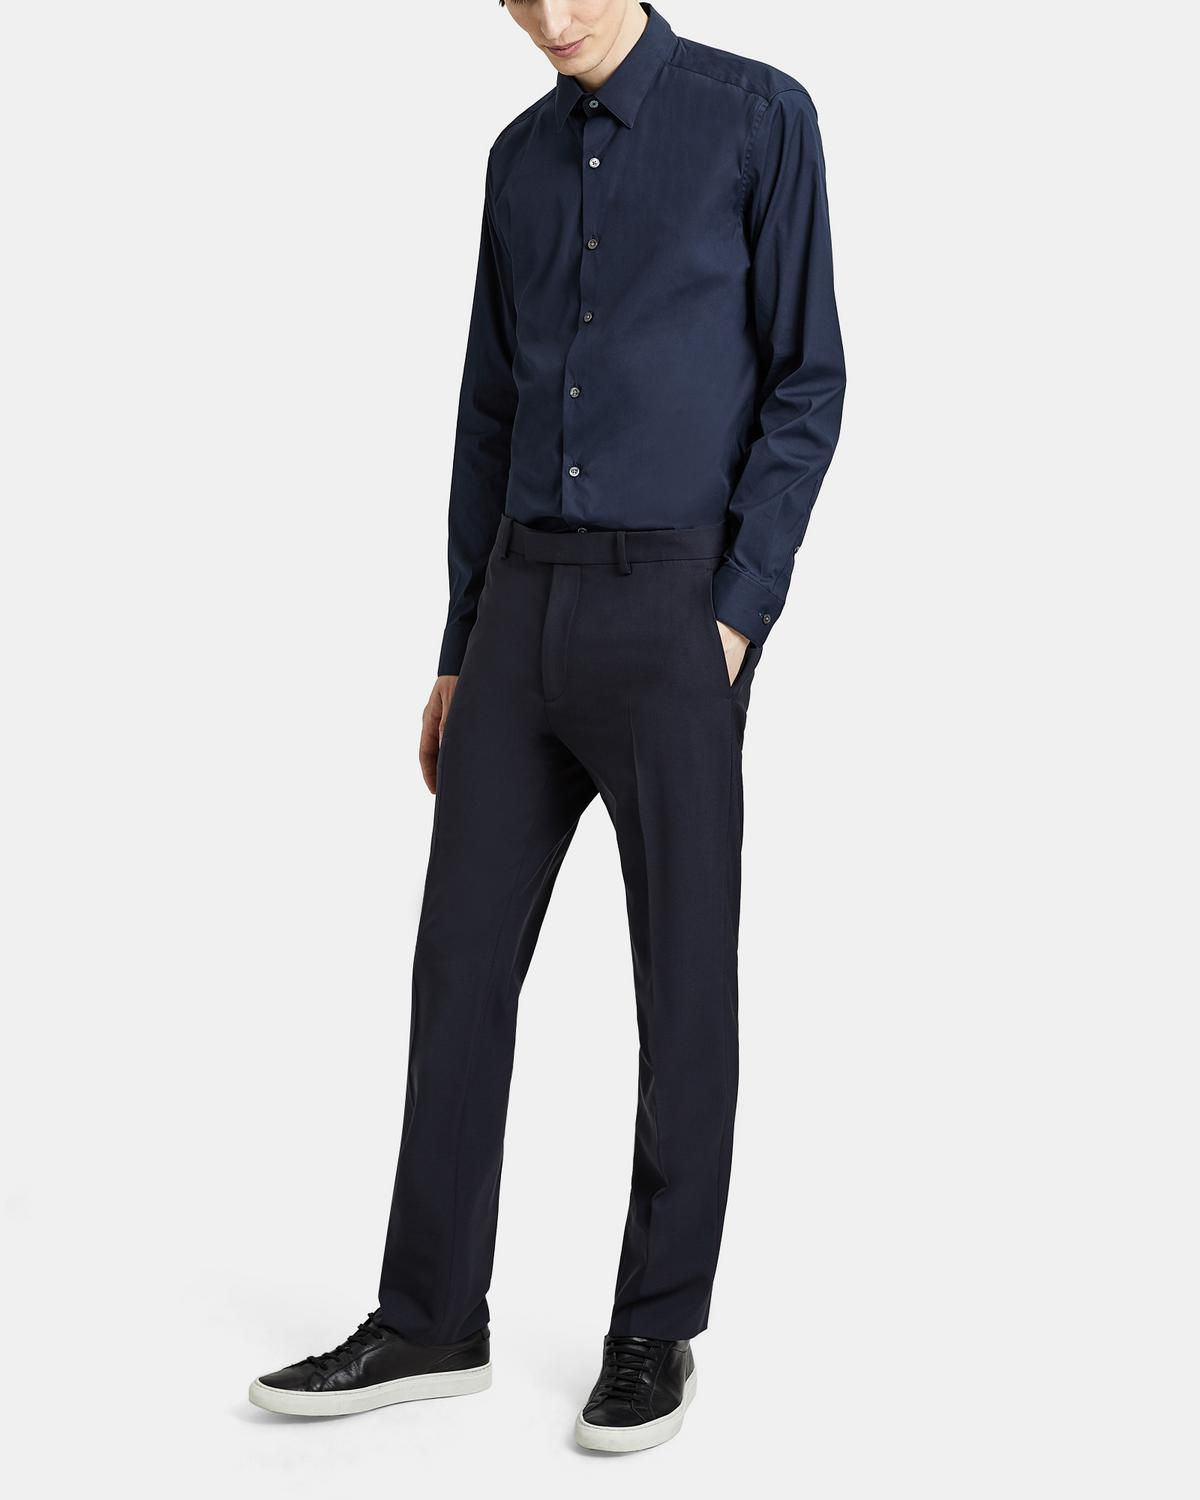 Straight-Fit Suit Pant in Good Wool